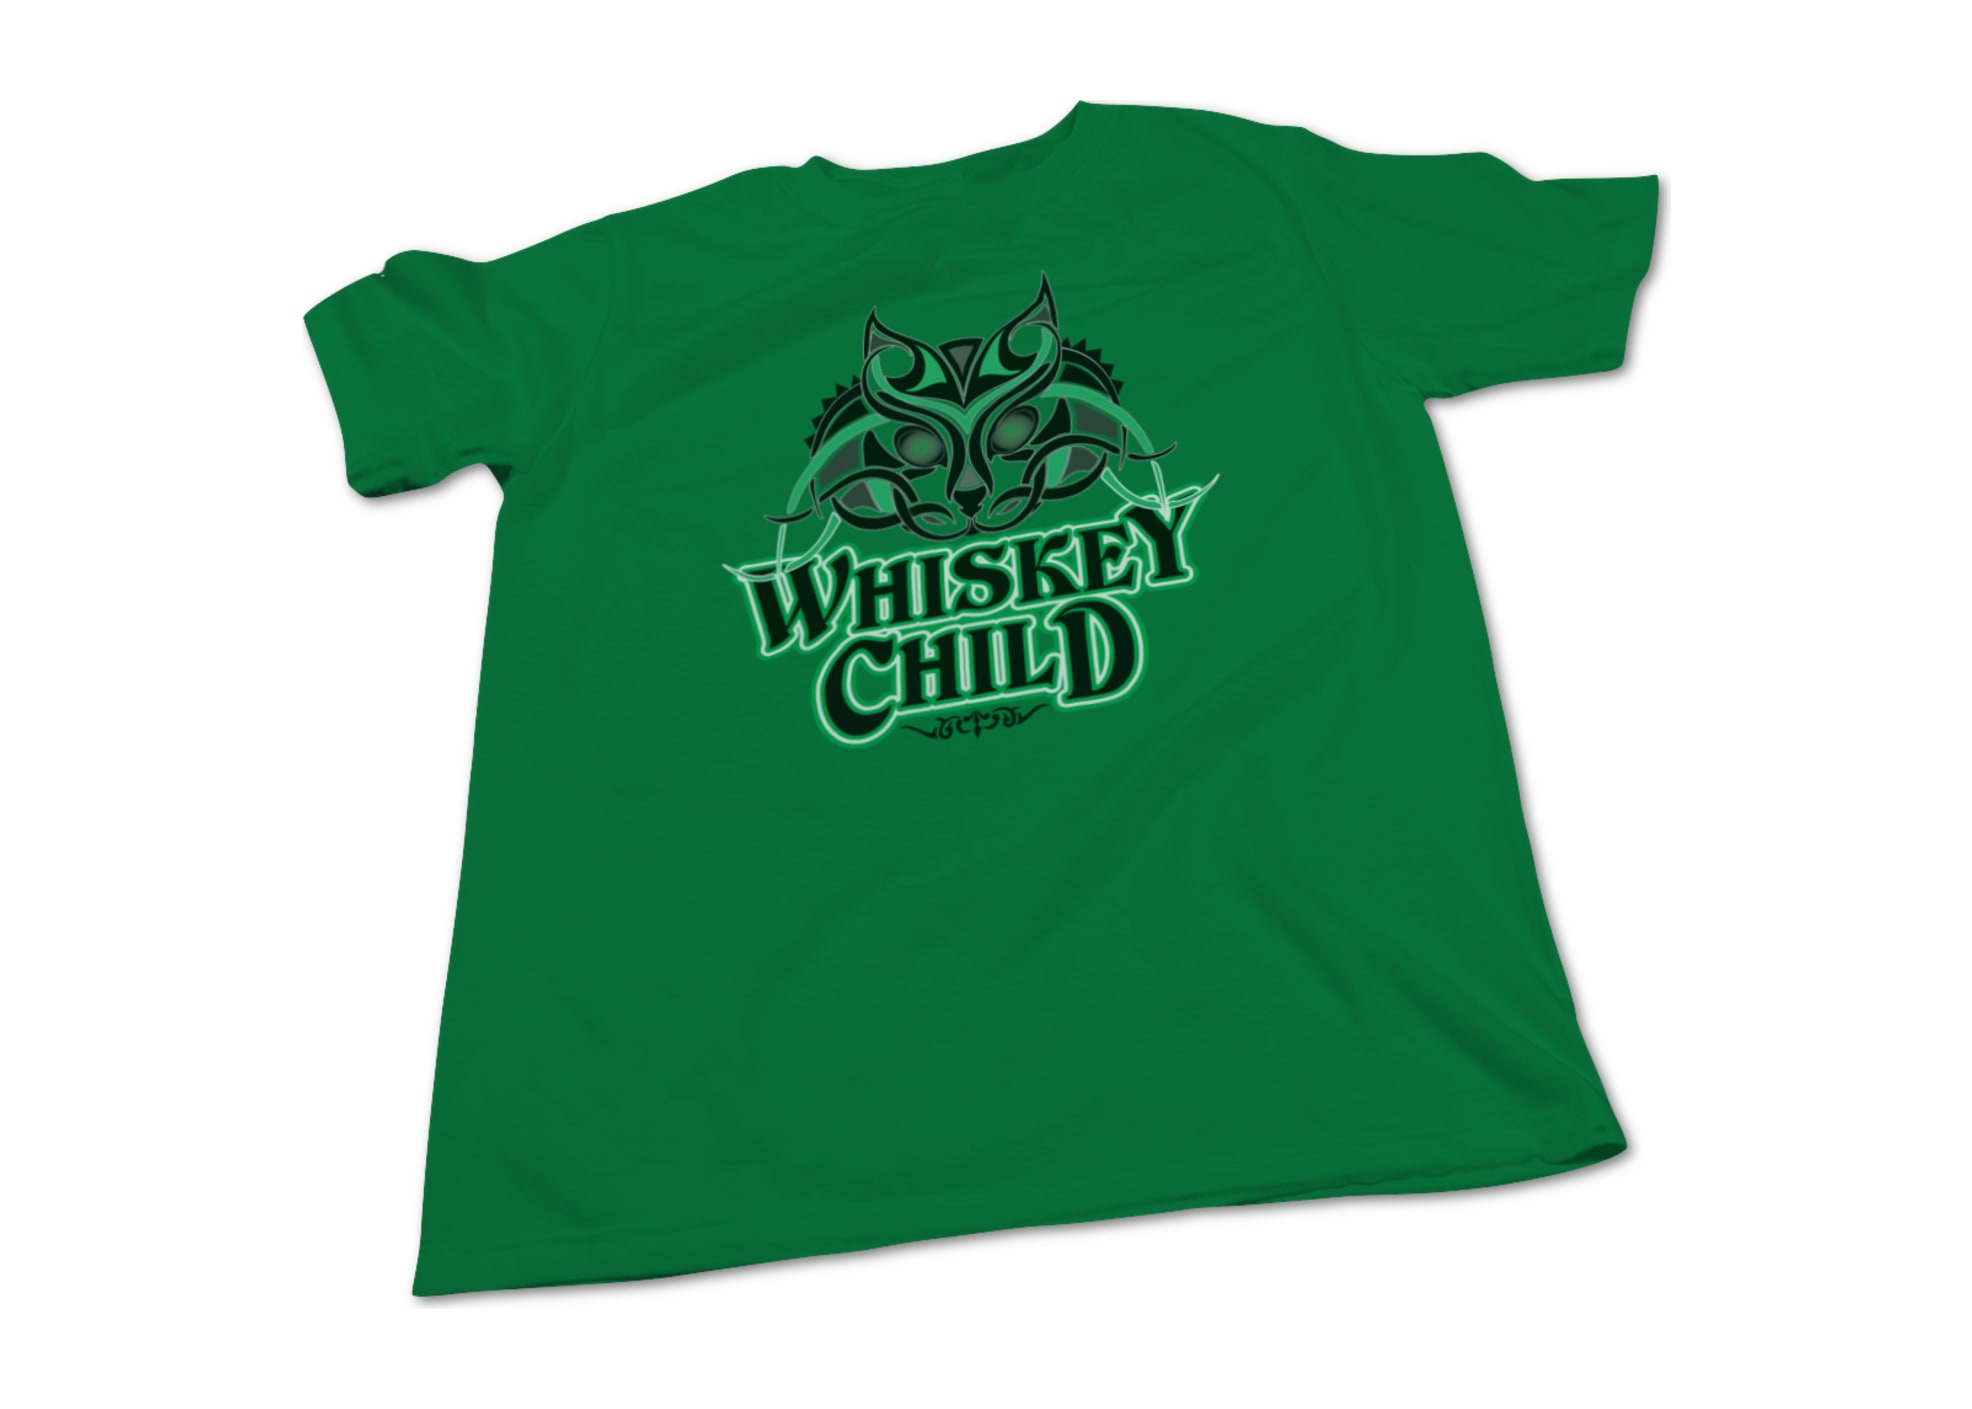 Whiskey child whiskey child   feline design by trey mcgriff 1473475577